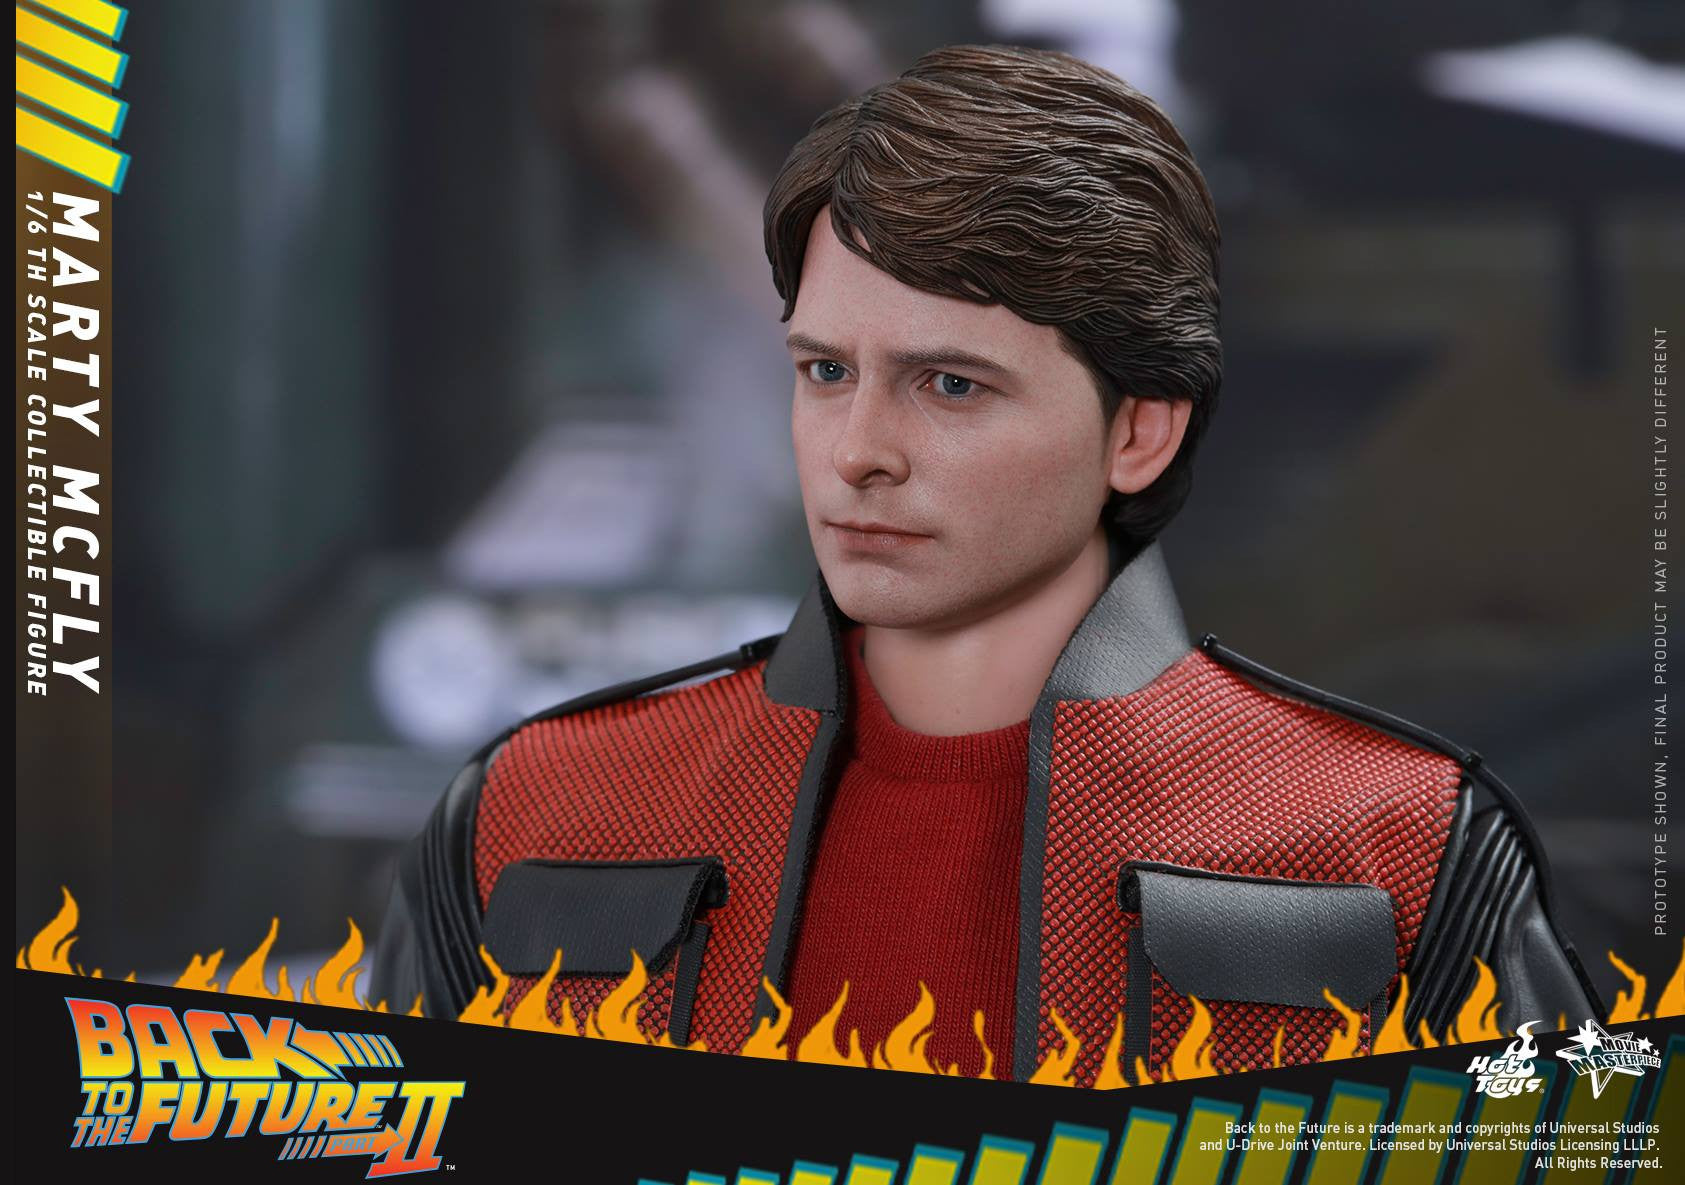 Hot Toys - MMS379 - Back to The Future Part II - Marty McFly (Normal Edition) - Marvelous Toys - 9